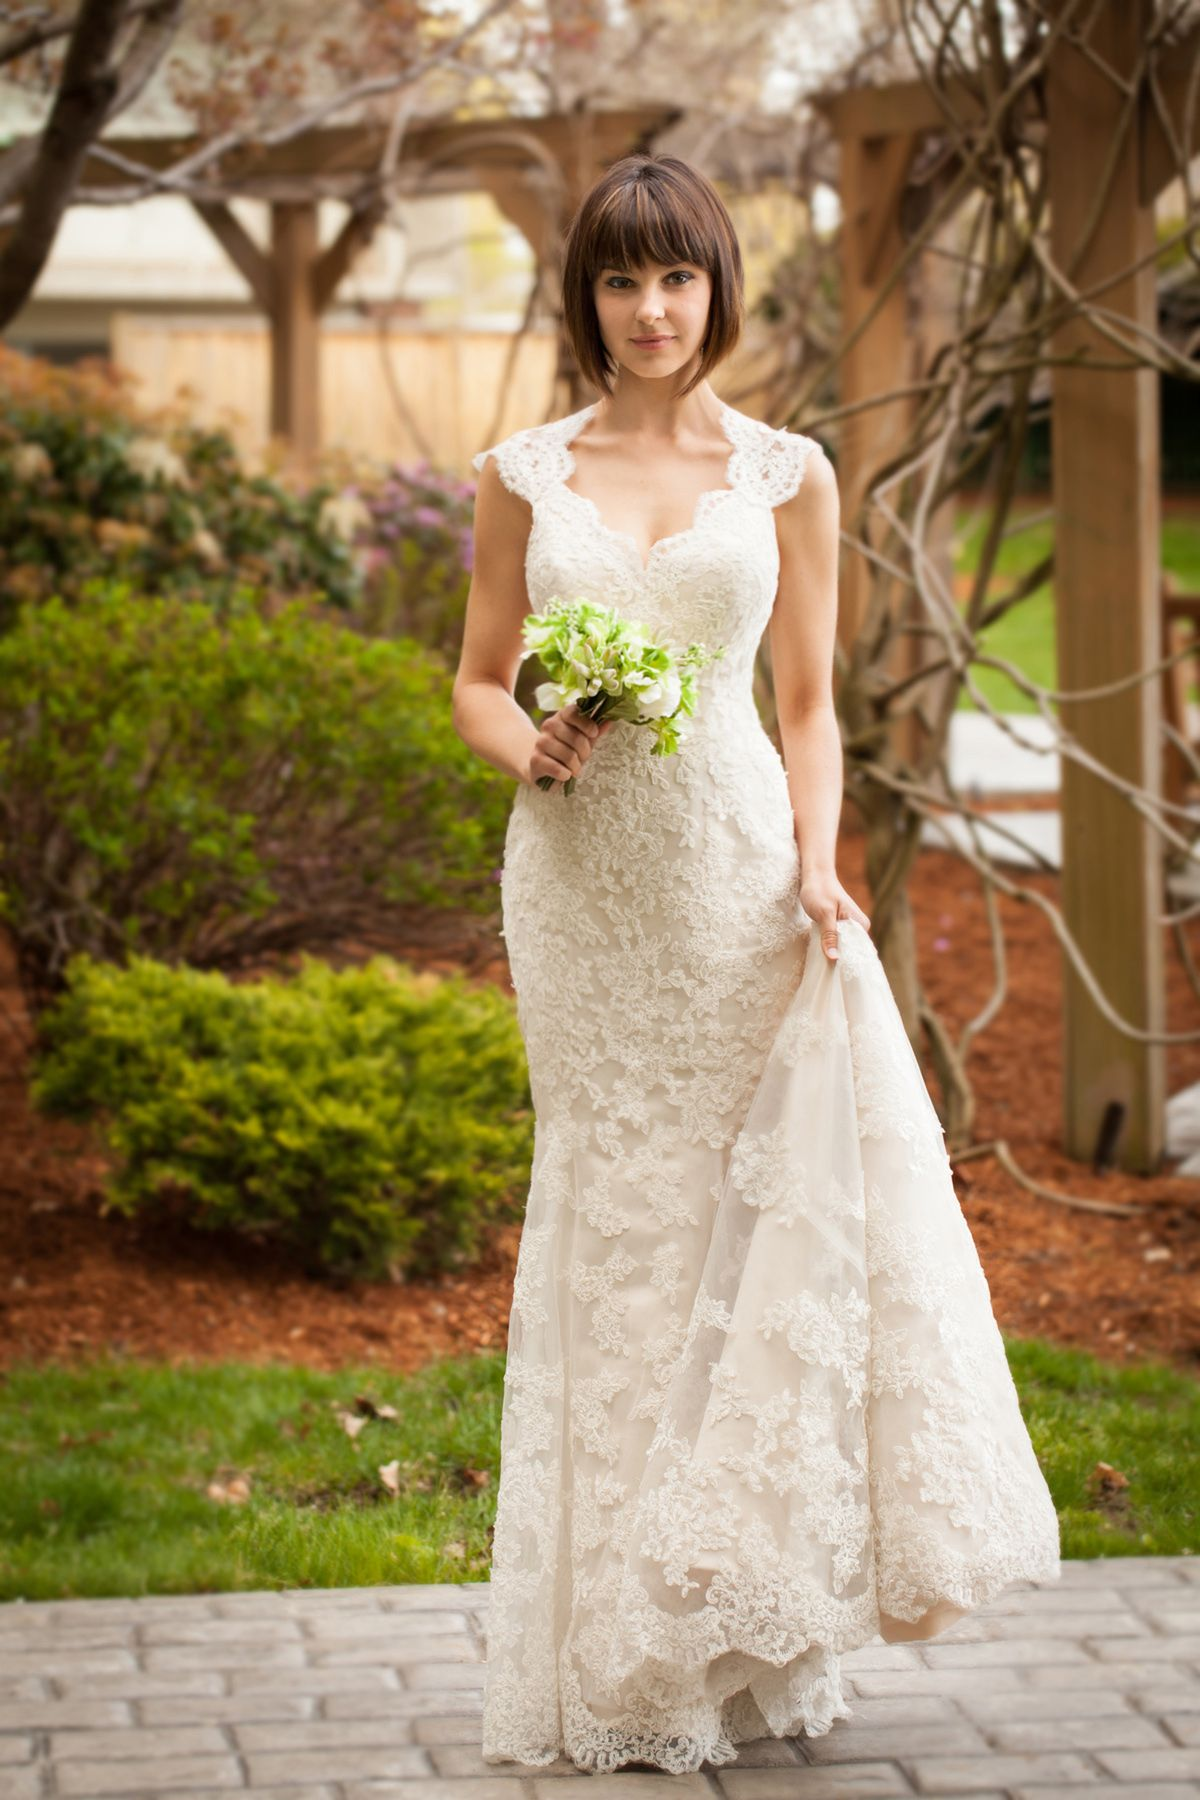 Pin by Mandy Hung on wedding dresses (With images